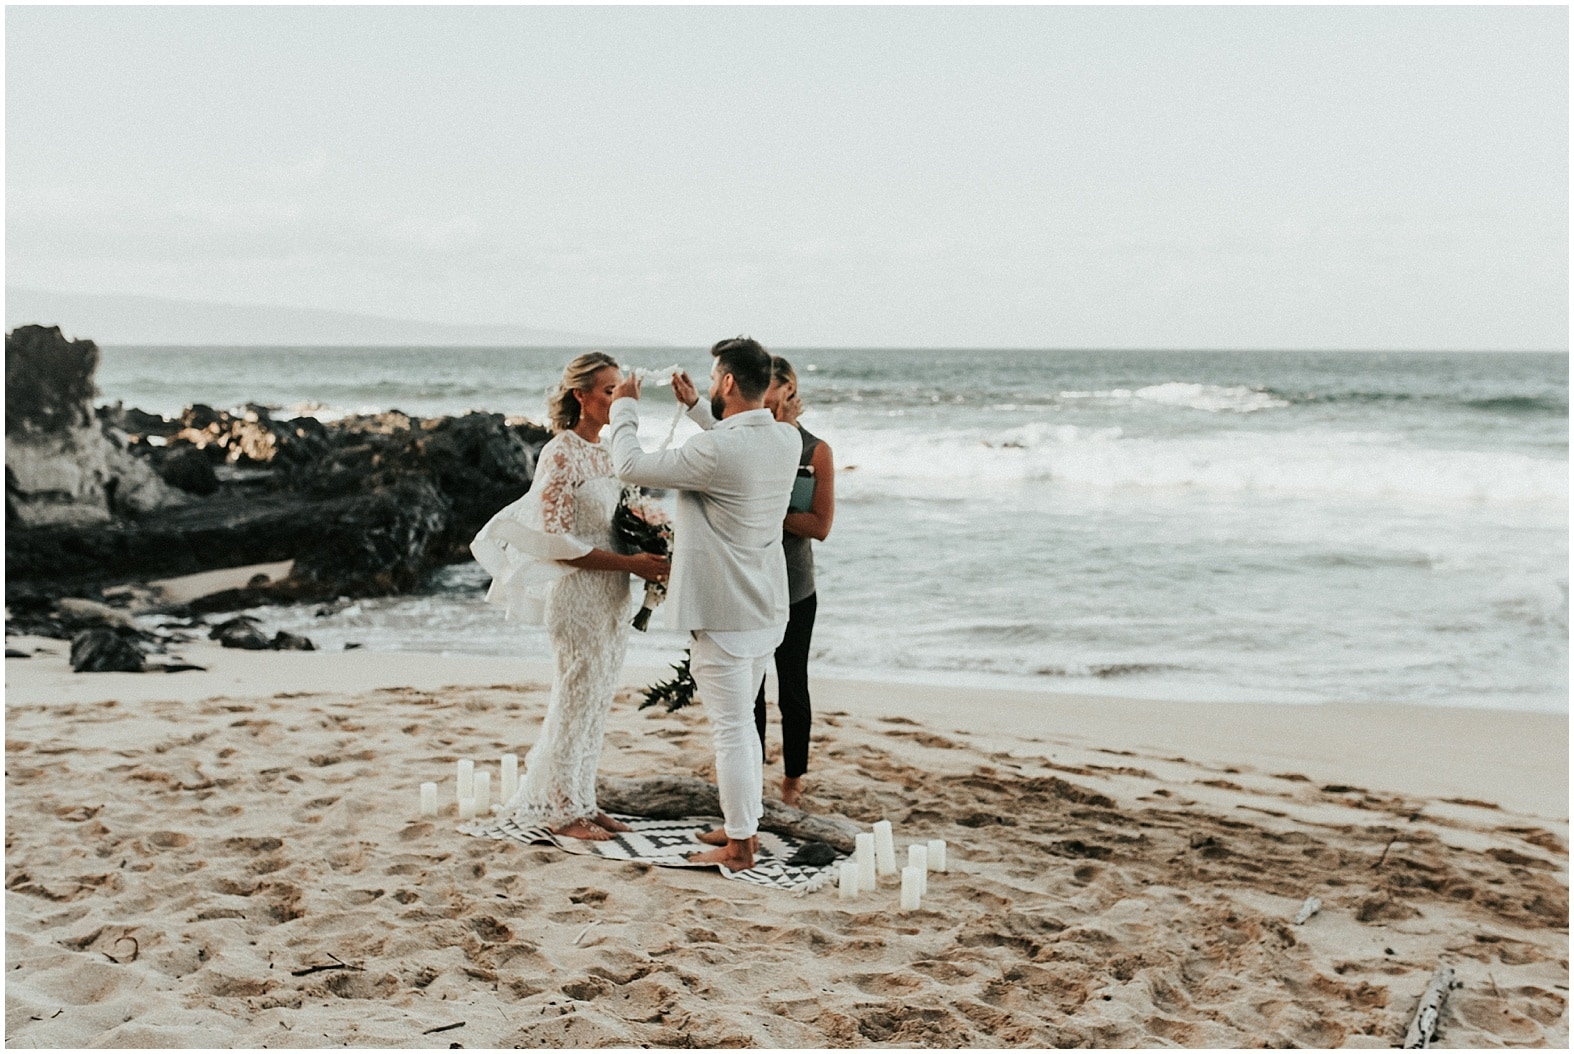 Maui wedding photographer28